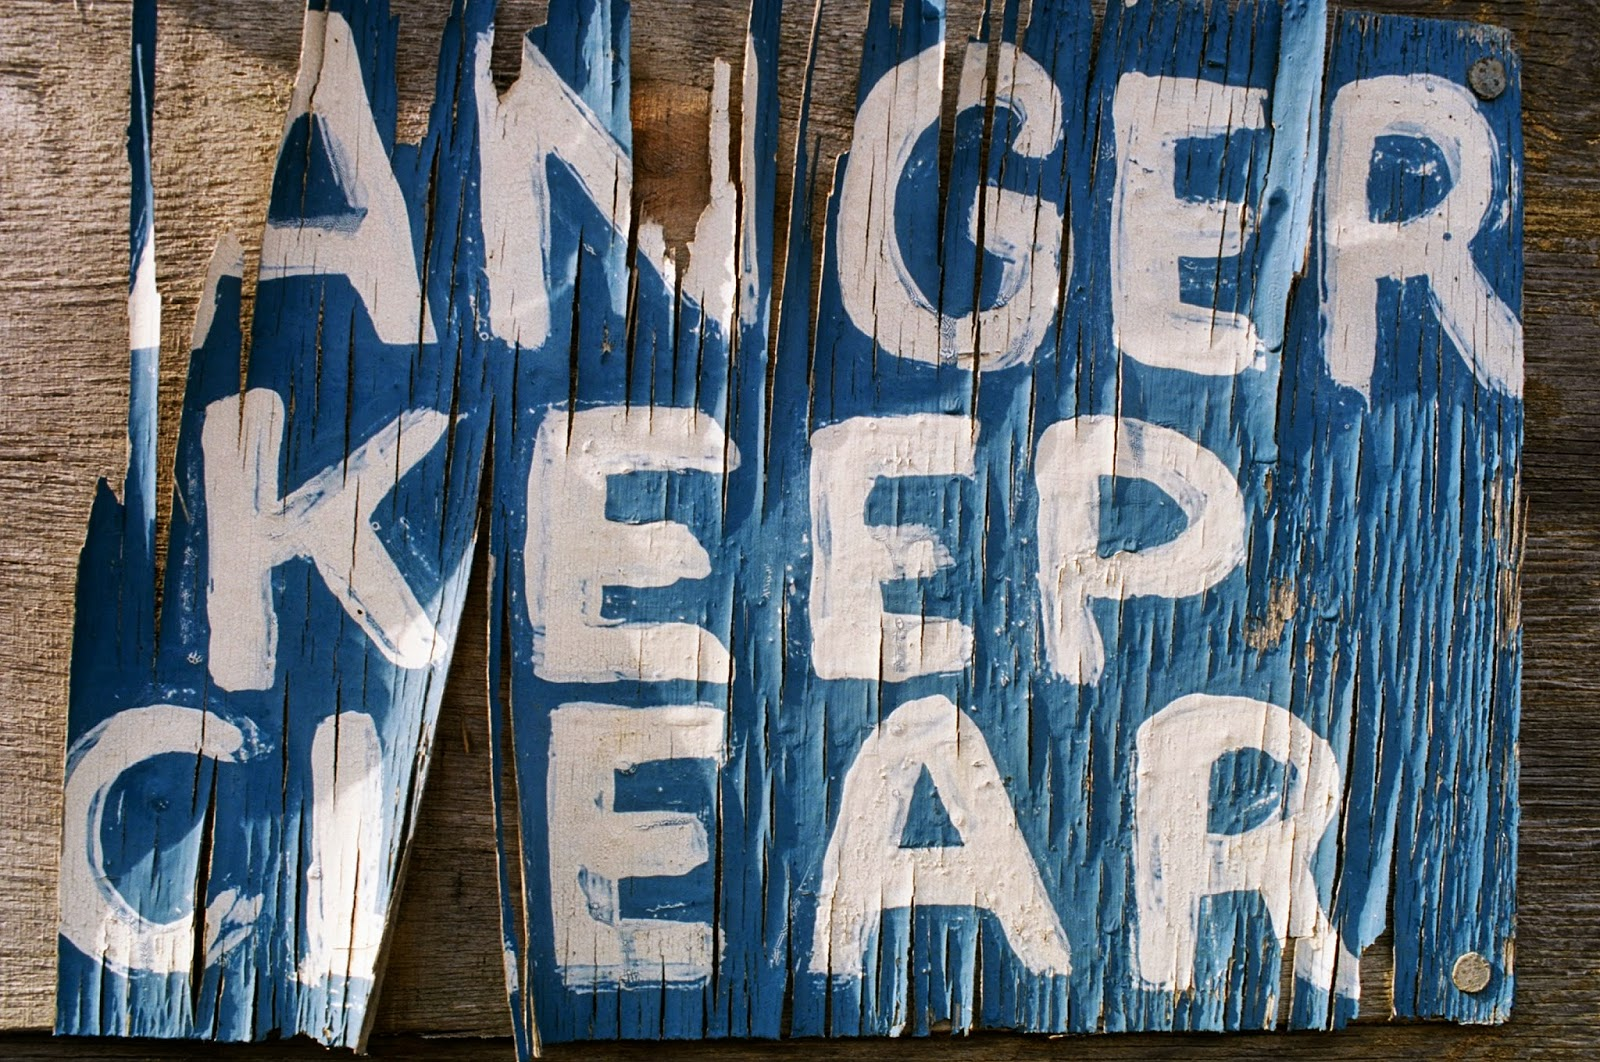 ANGER MANAGEMENT, DISAFFECTED VOTERS, CASH FOR QUESTIONS, NONE OF THE ABOVE, NOT IN OUR NAME, FISHING, ANGER KEEP CLEAR, DANGER KEEP CLEAR, HEALTH AND SAFETY, 2015 GENERAL ELECTION, DEAL, KENT, © VAC 100 DAYS 4 MILLION CONVERSATIONS